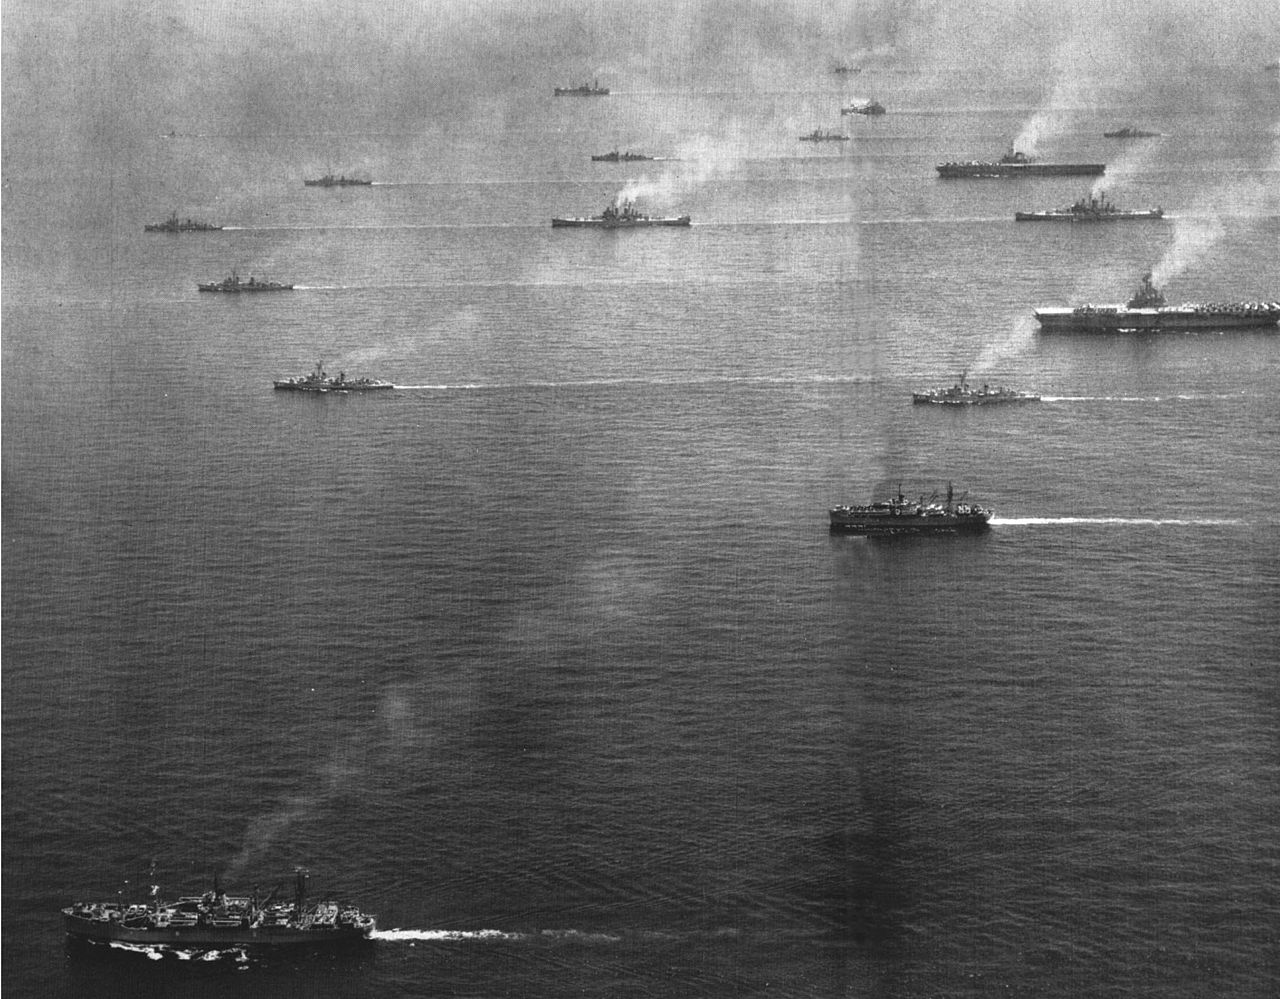 Sixth Fleet underway in the Mediterranean c. 1954